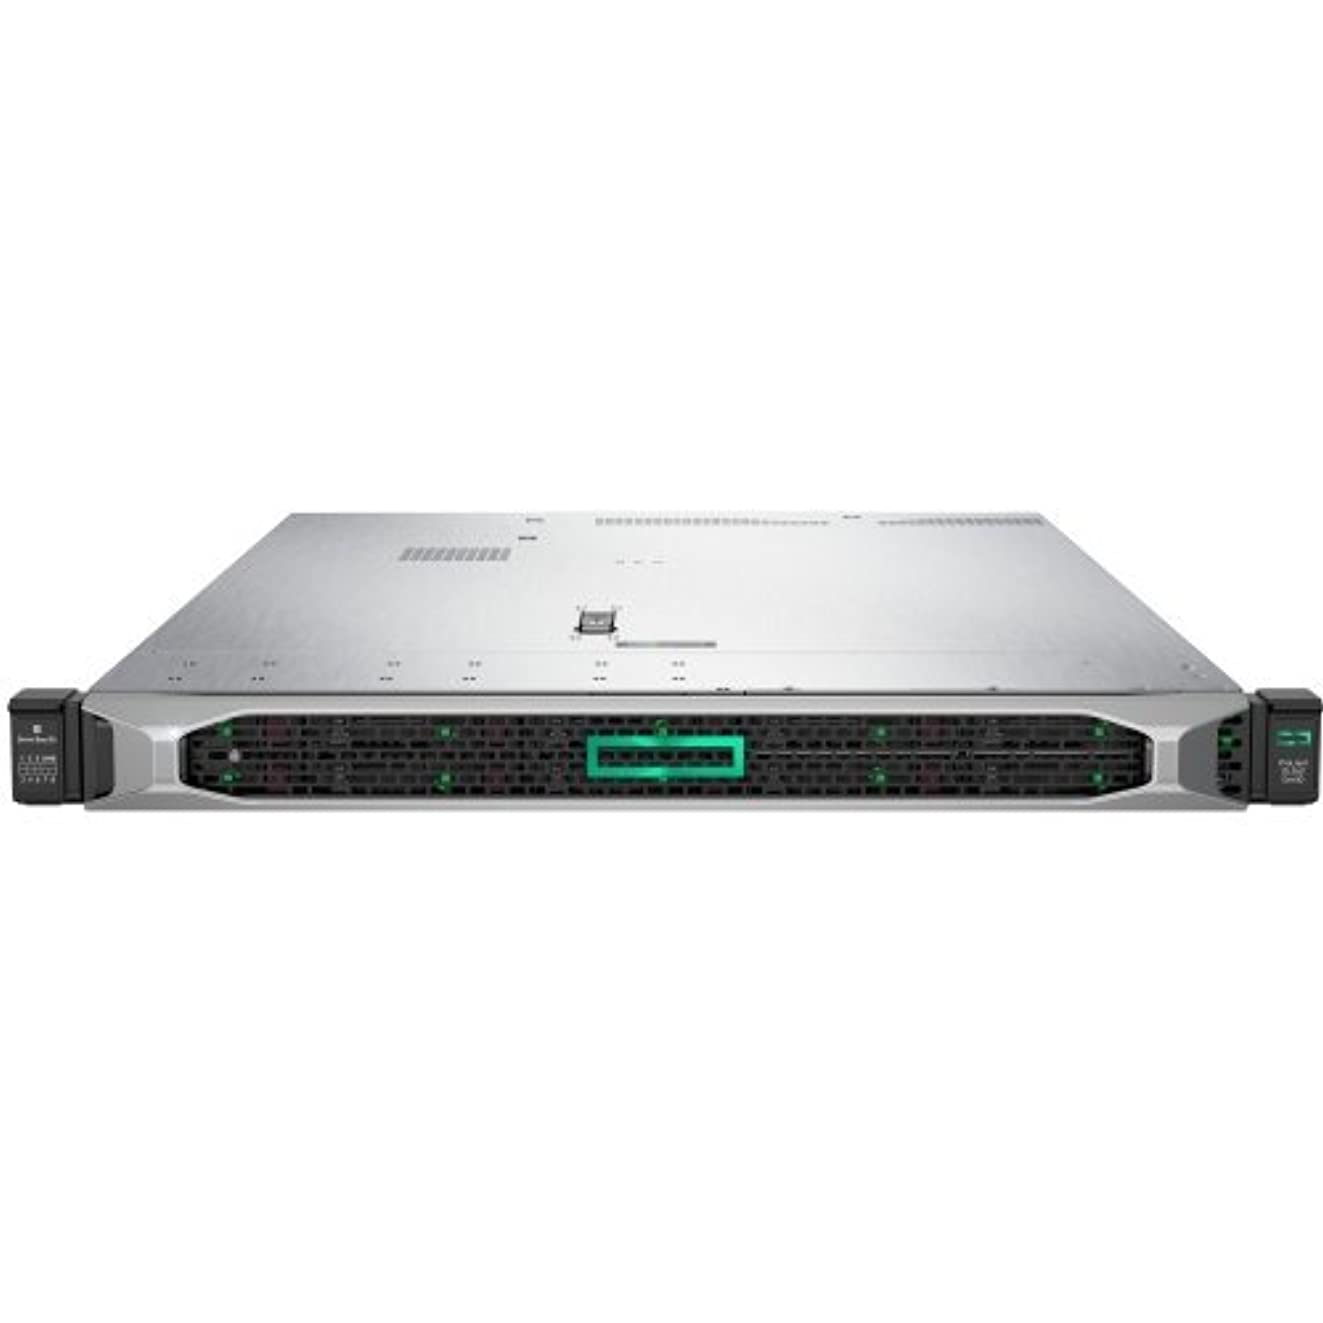 HP Enterprise 874459-S01 DL360 GEN10 4112 1P 16G 8SFF Rack Mountable Server